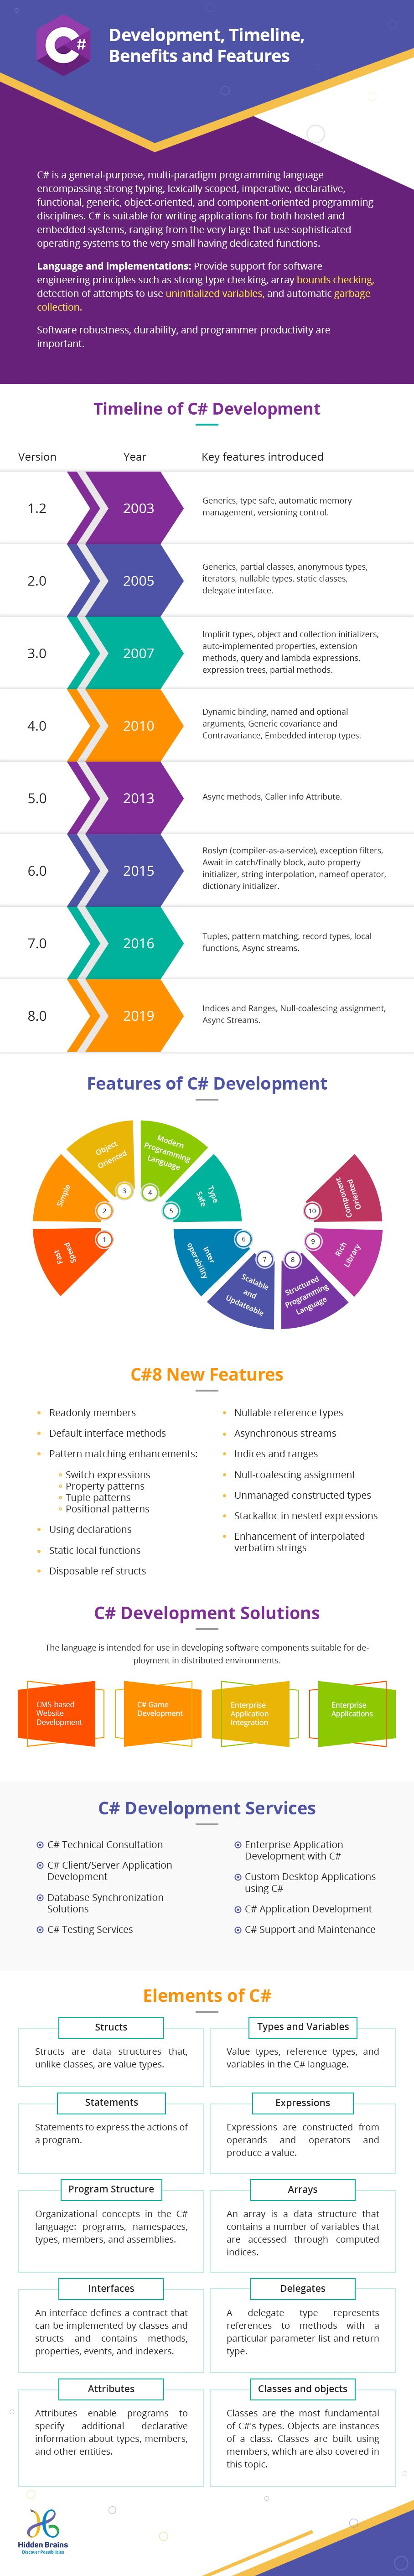 c sharp development benefits and features infographic